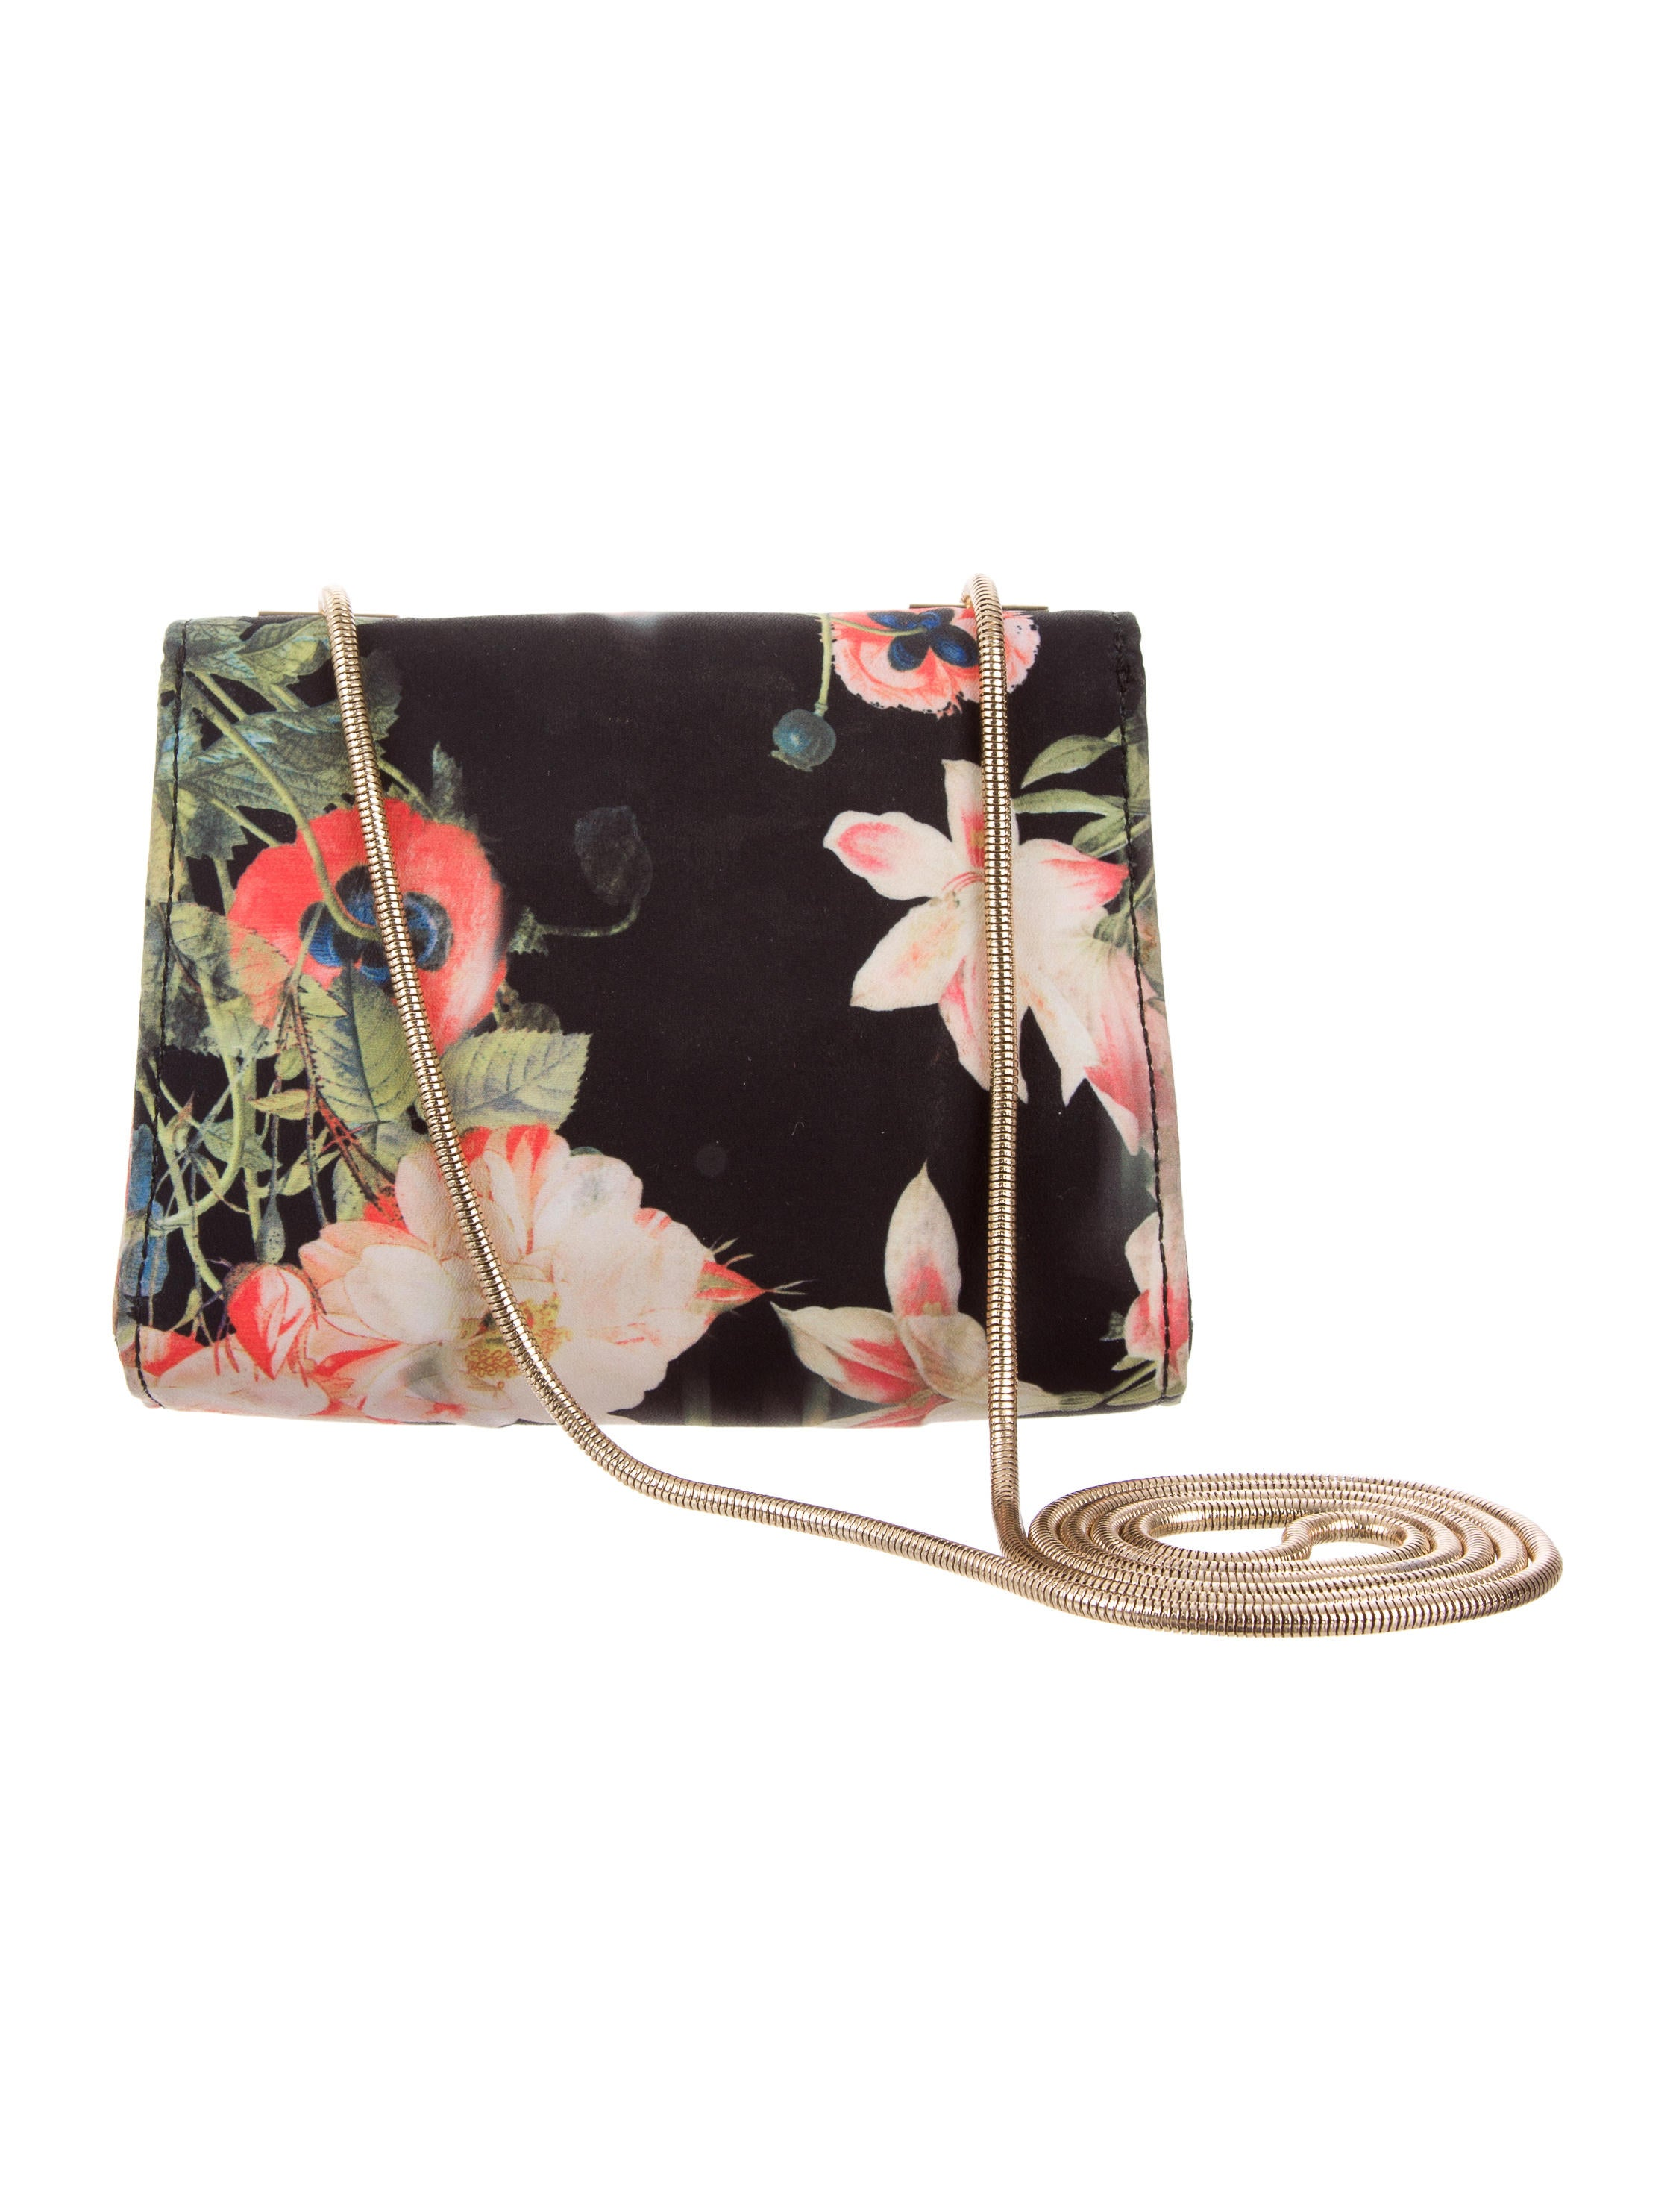 Ted Baker Floral Print Crossbody Bag - Handbags - W3B20424 | The RealReal